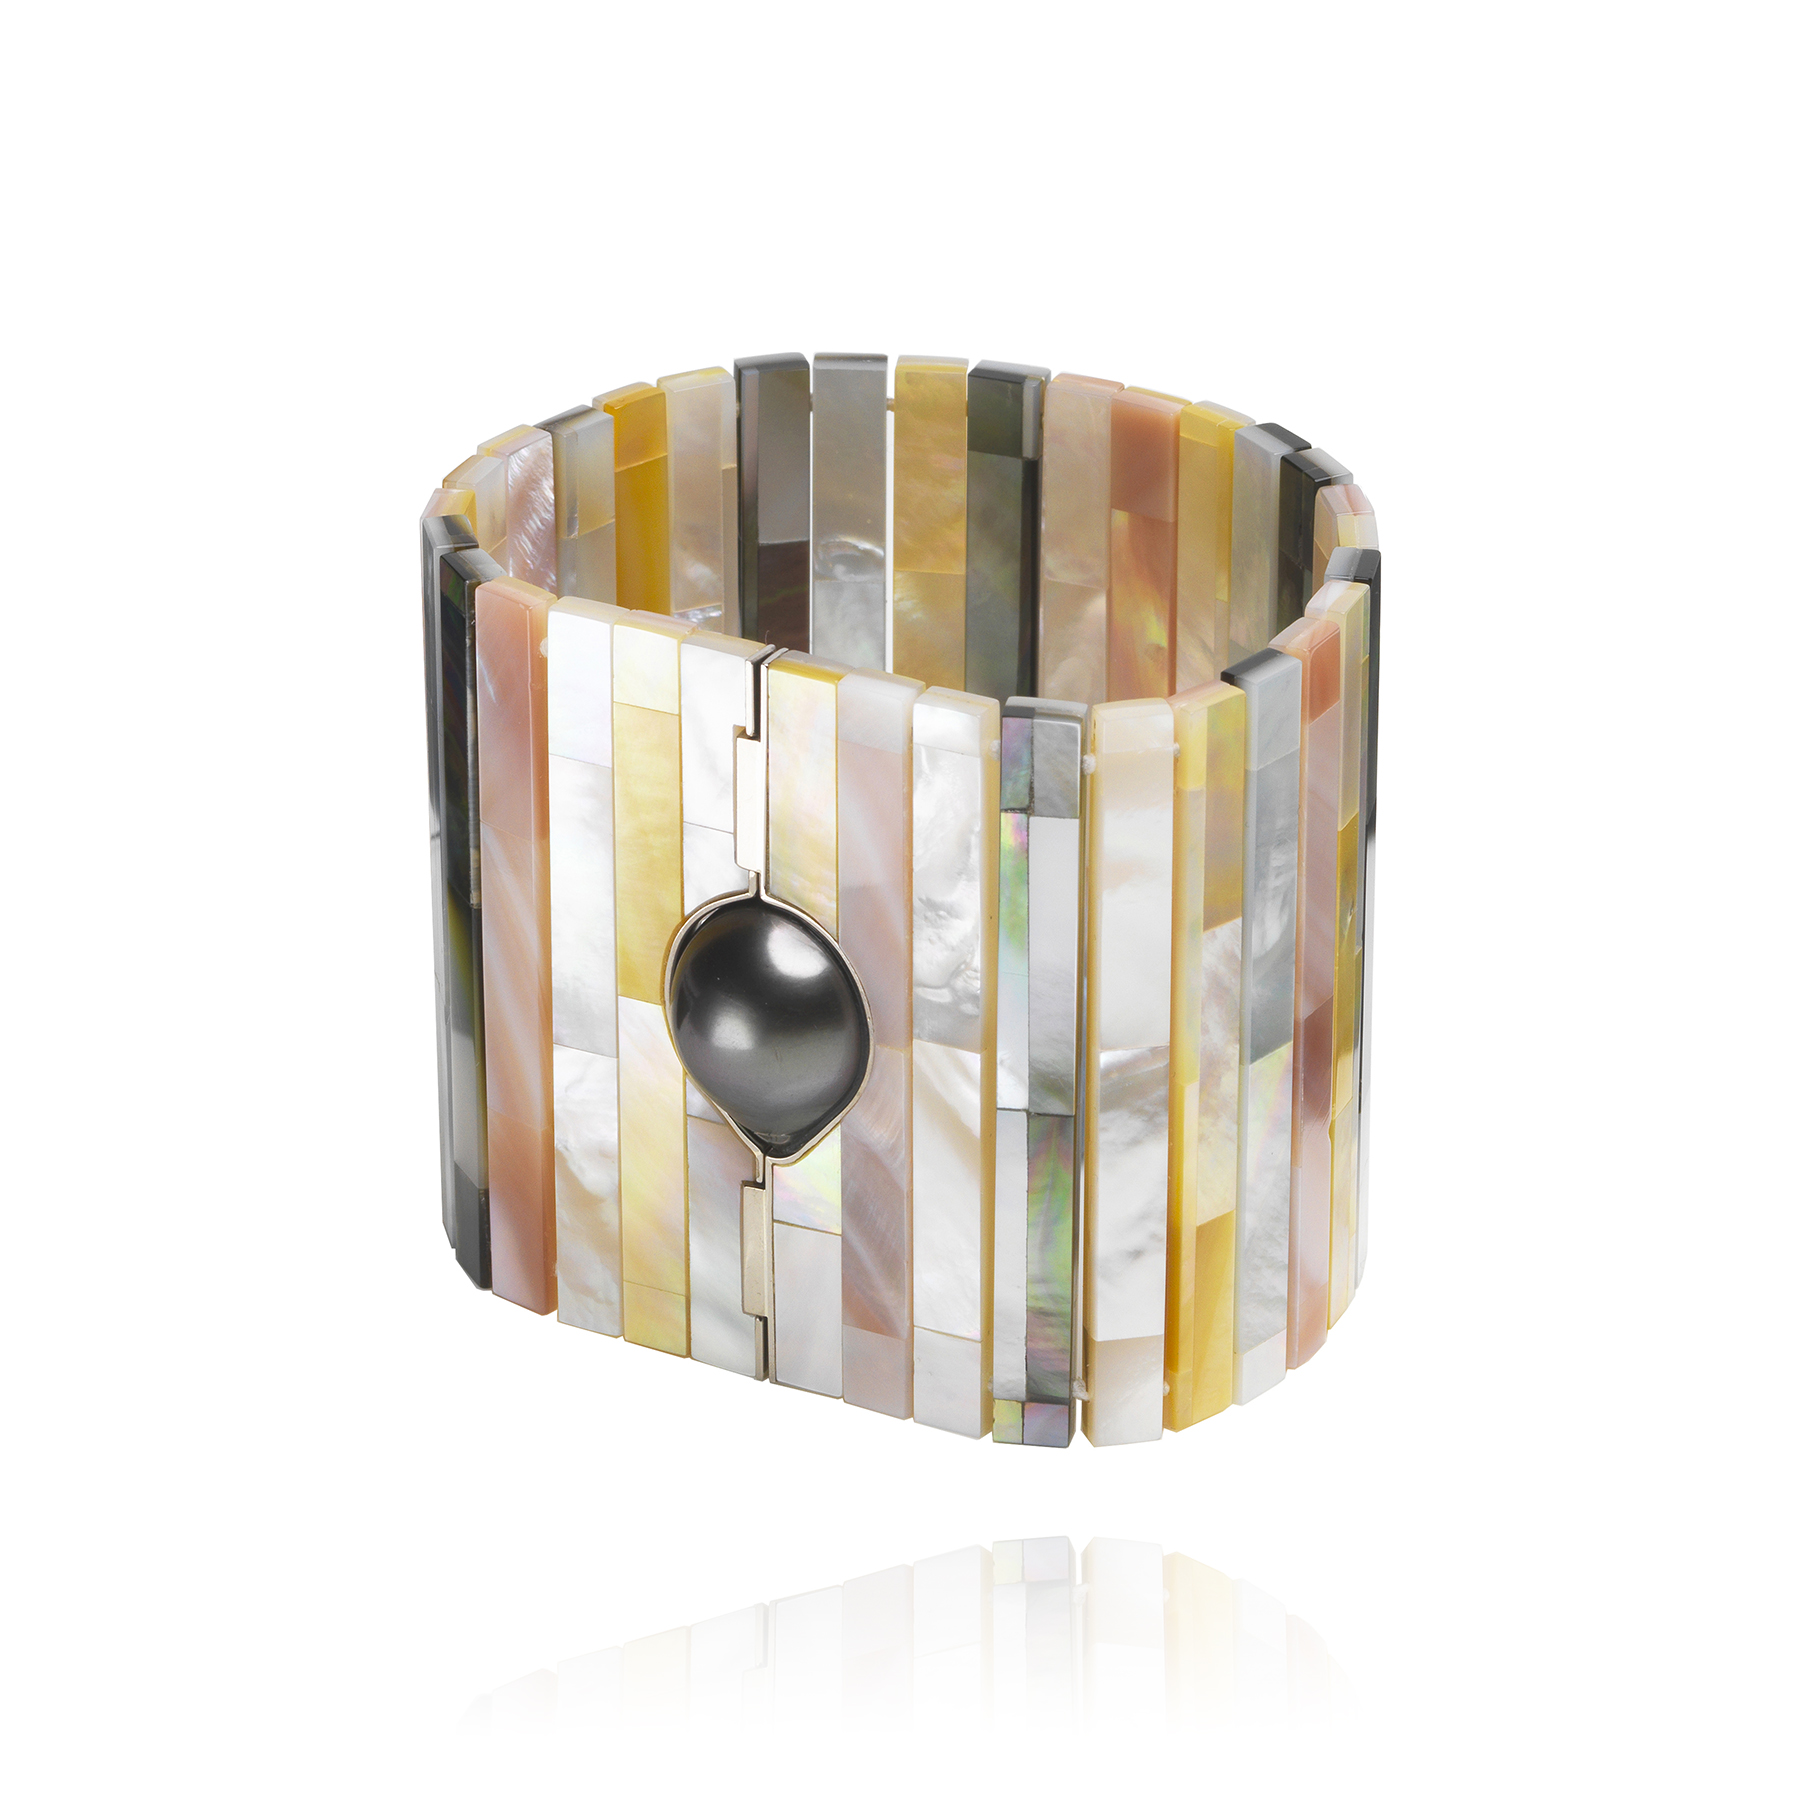 Tiles MOP Bracelet (Image Courtesy of Melanie Georgacopoulos)